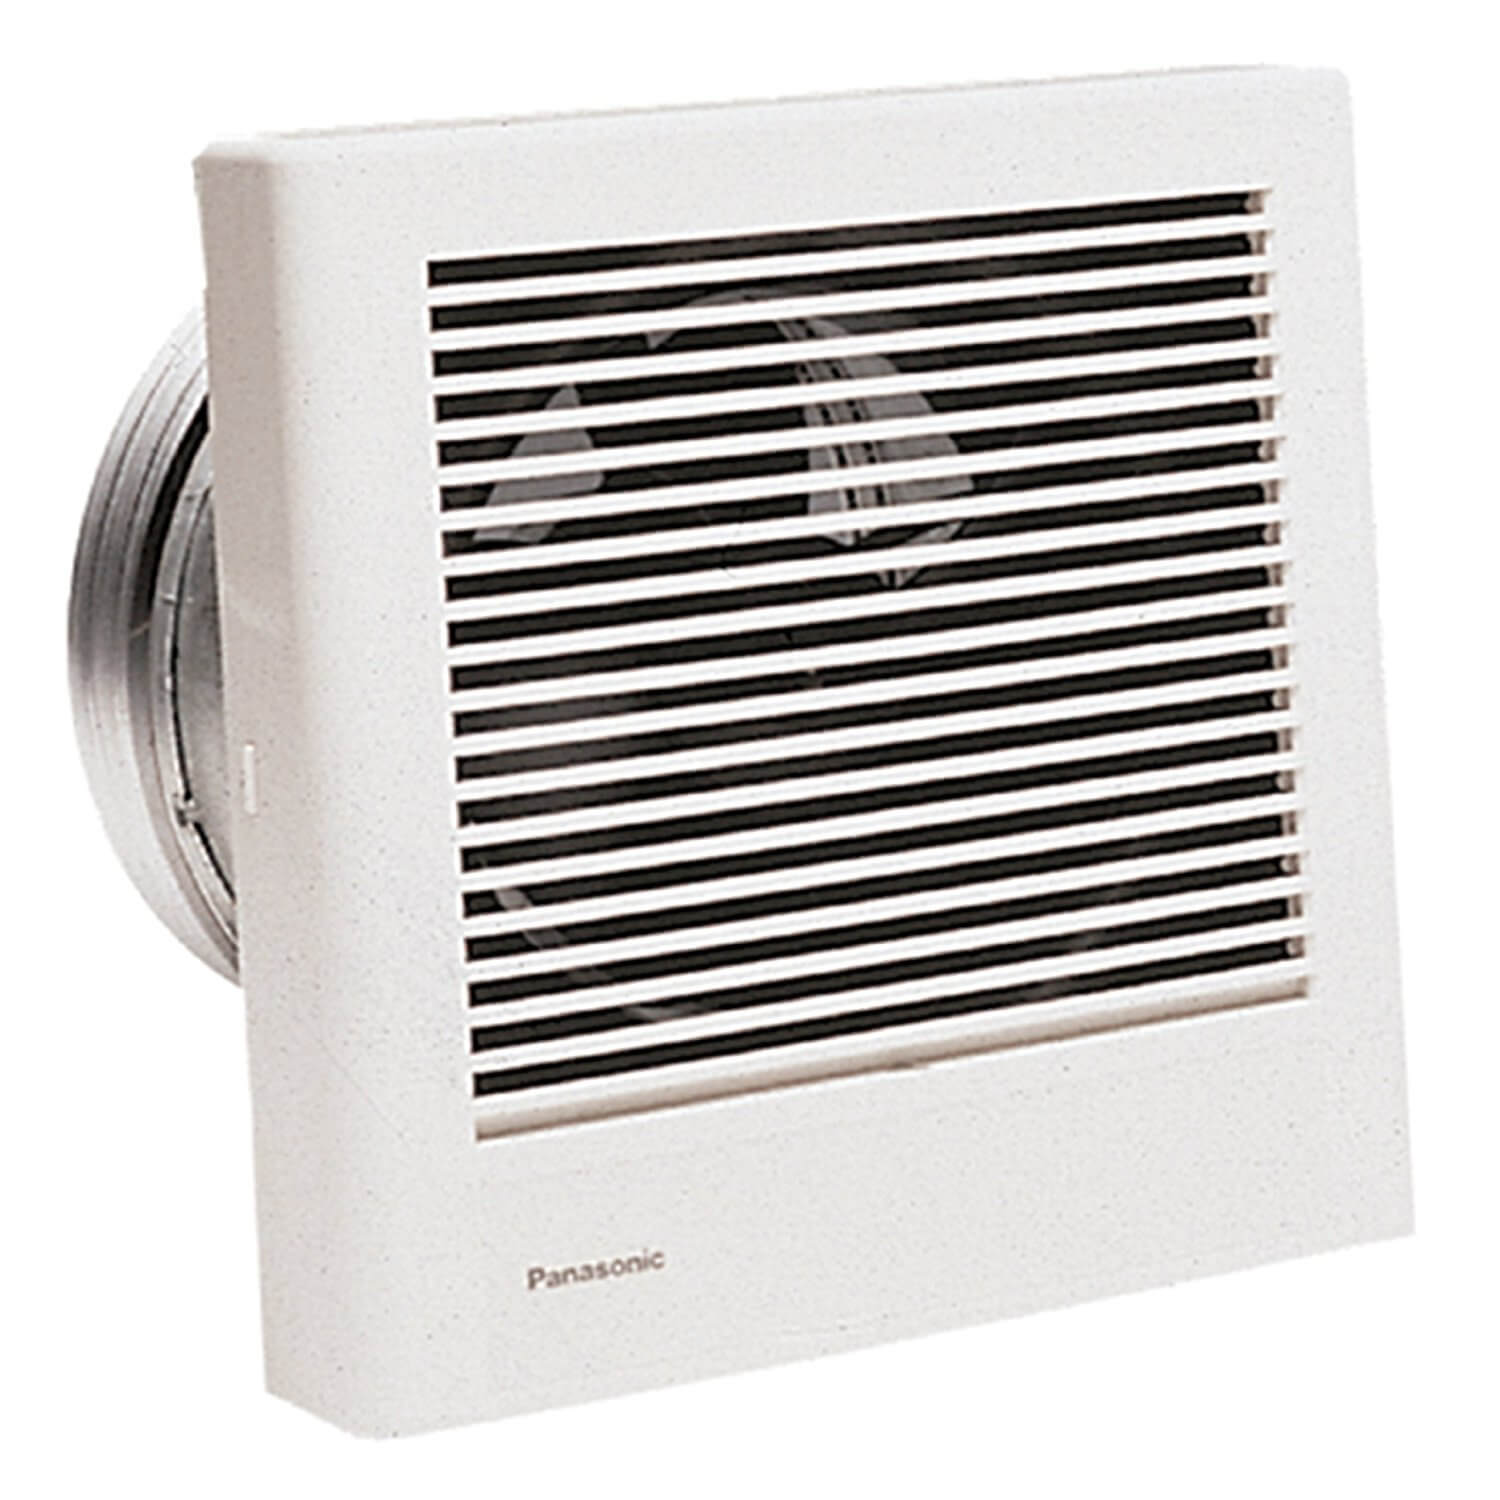 Updated Best Bathroom Exhaust Fans Of Ultimate Guide - Panasonic humidity sensing bathroom exhaust fans